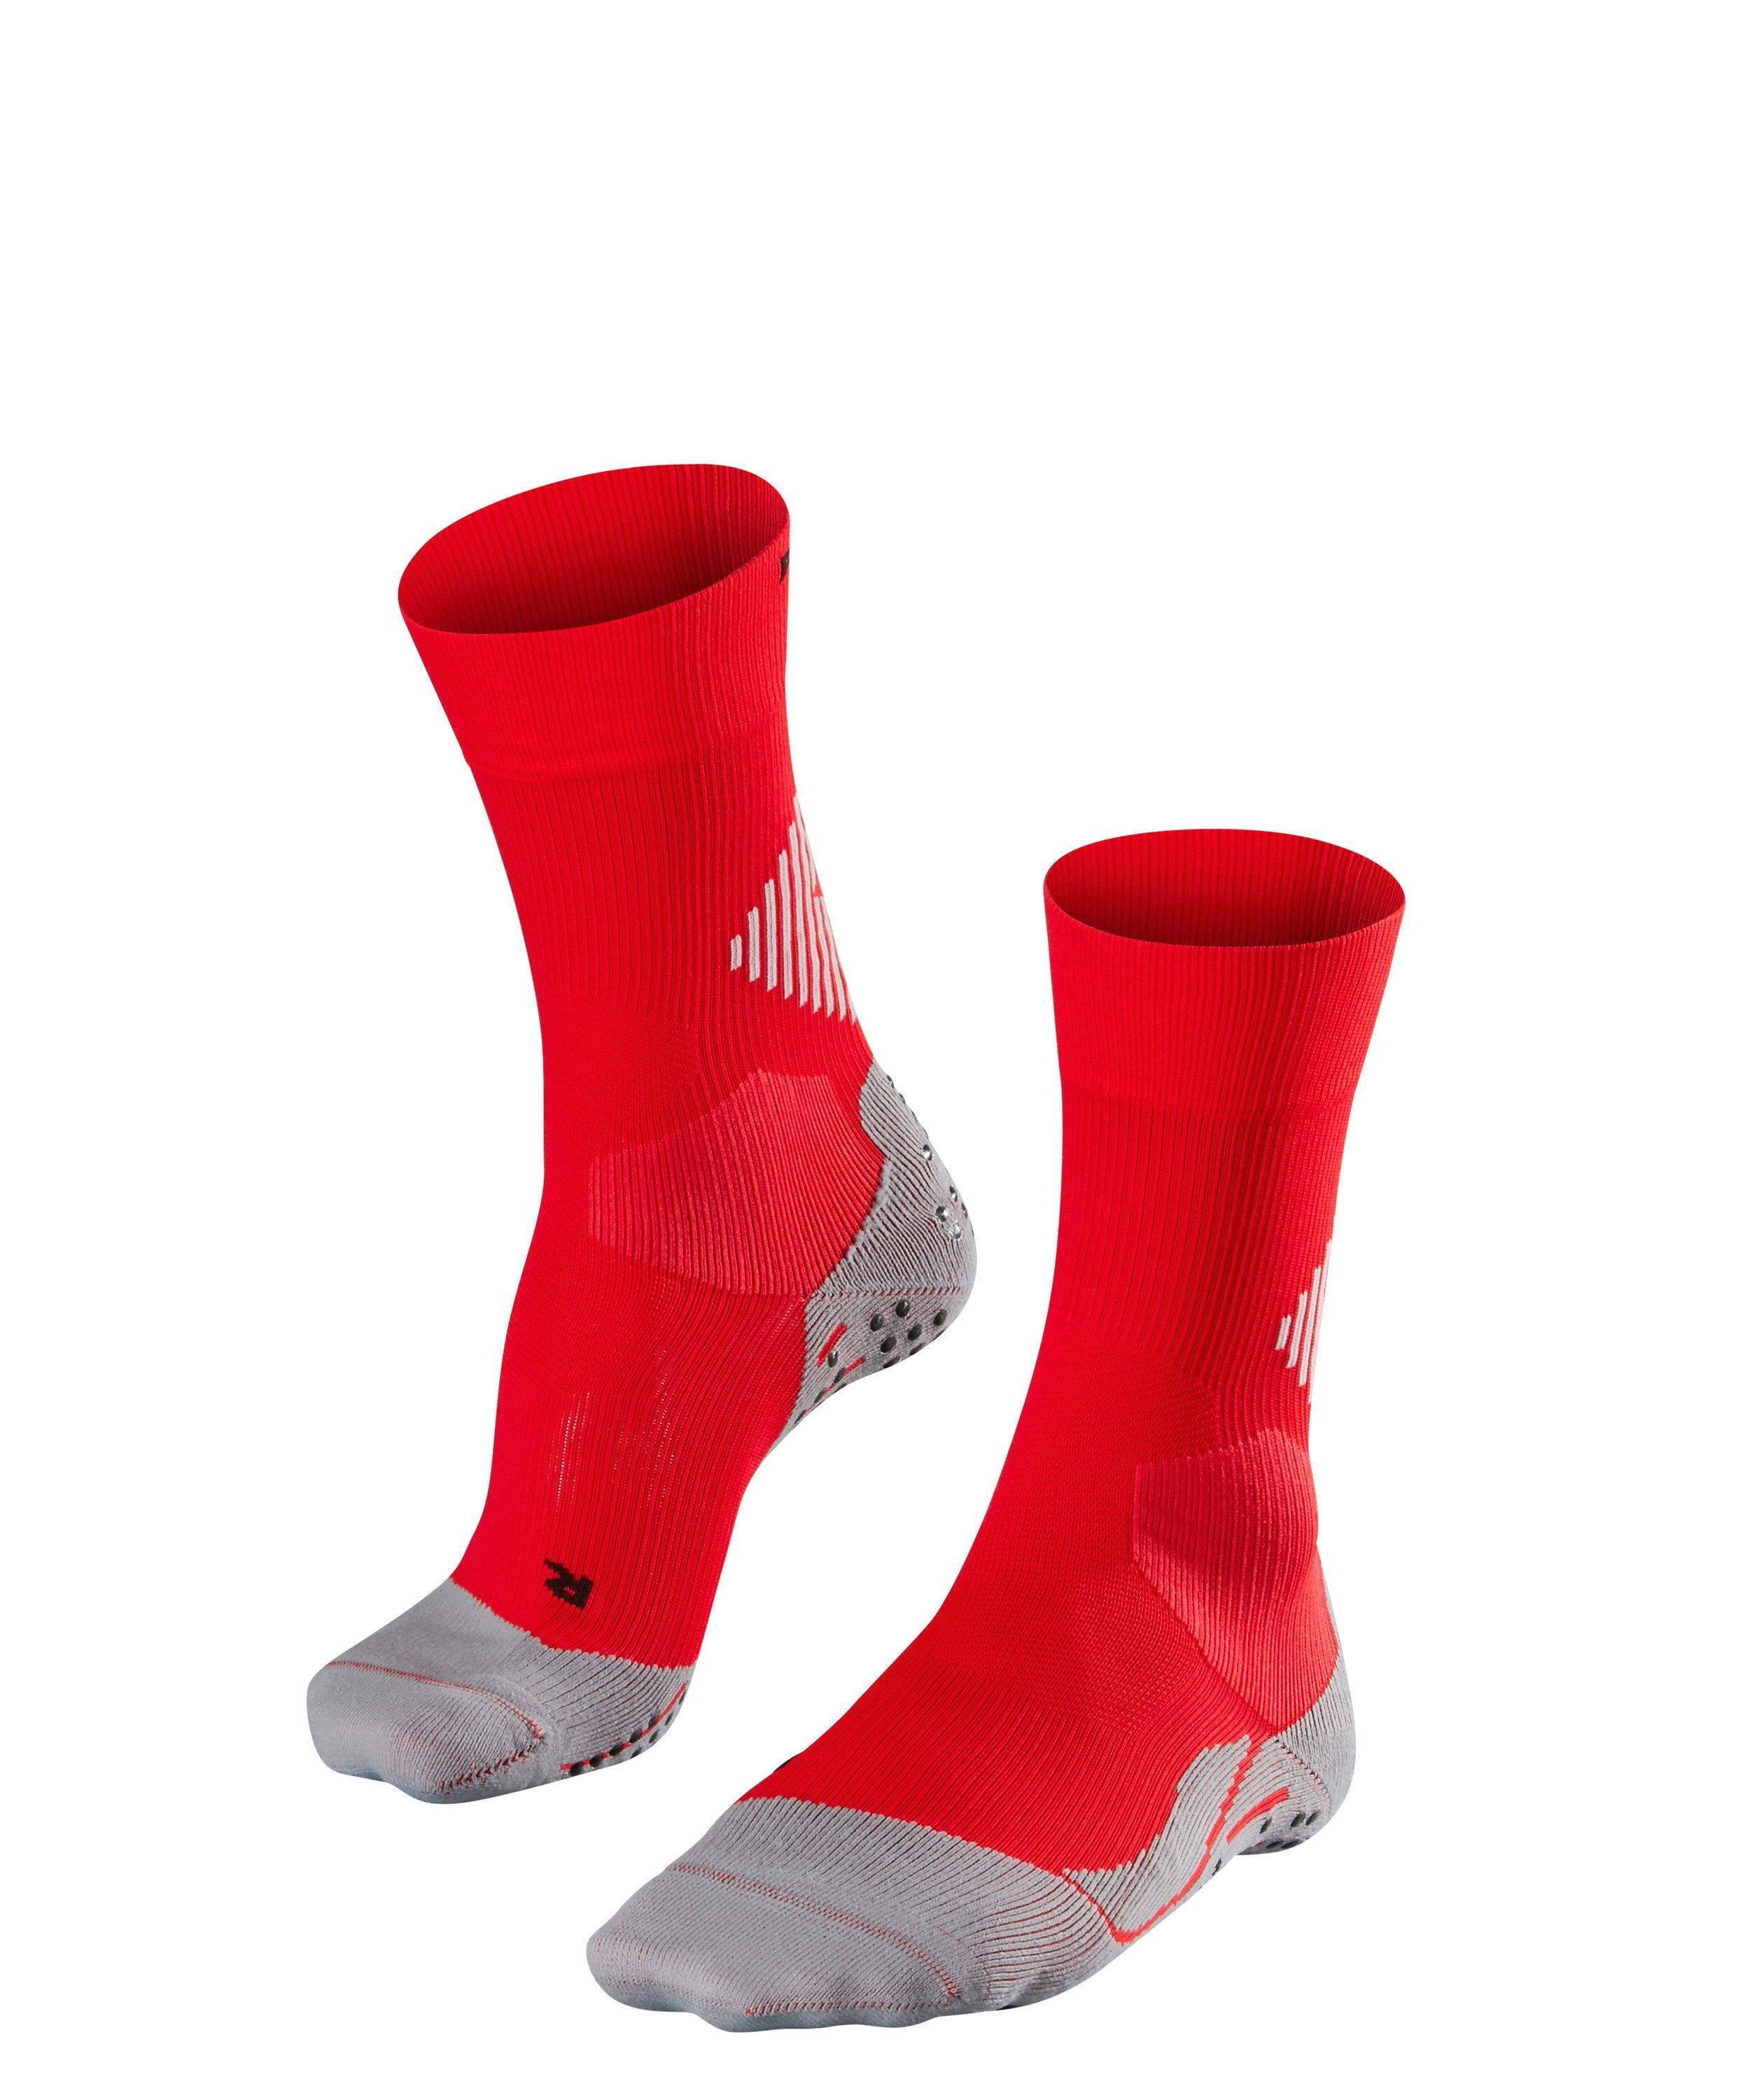 Chaussette 4 grips